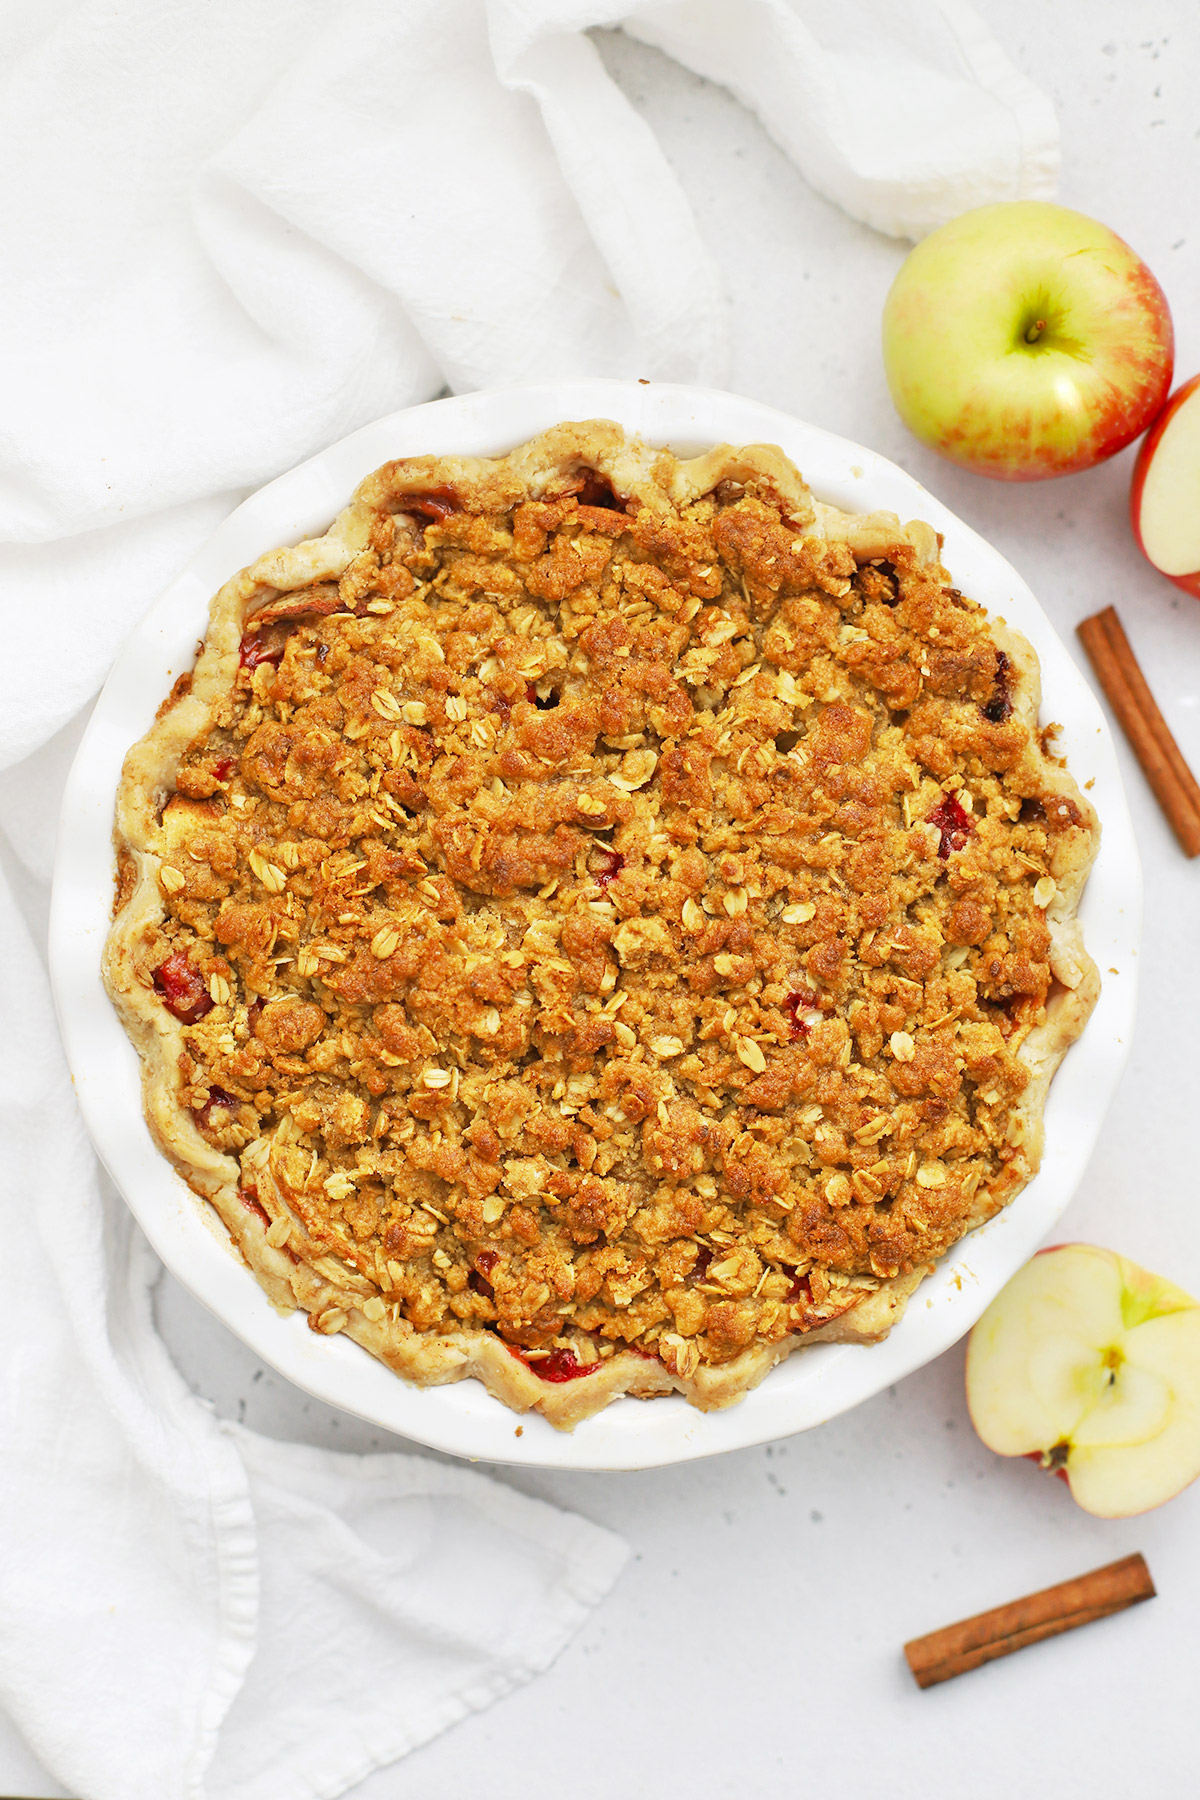 Overhead view of an Apple Cranberry Crumble Pie on a white background